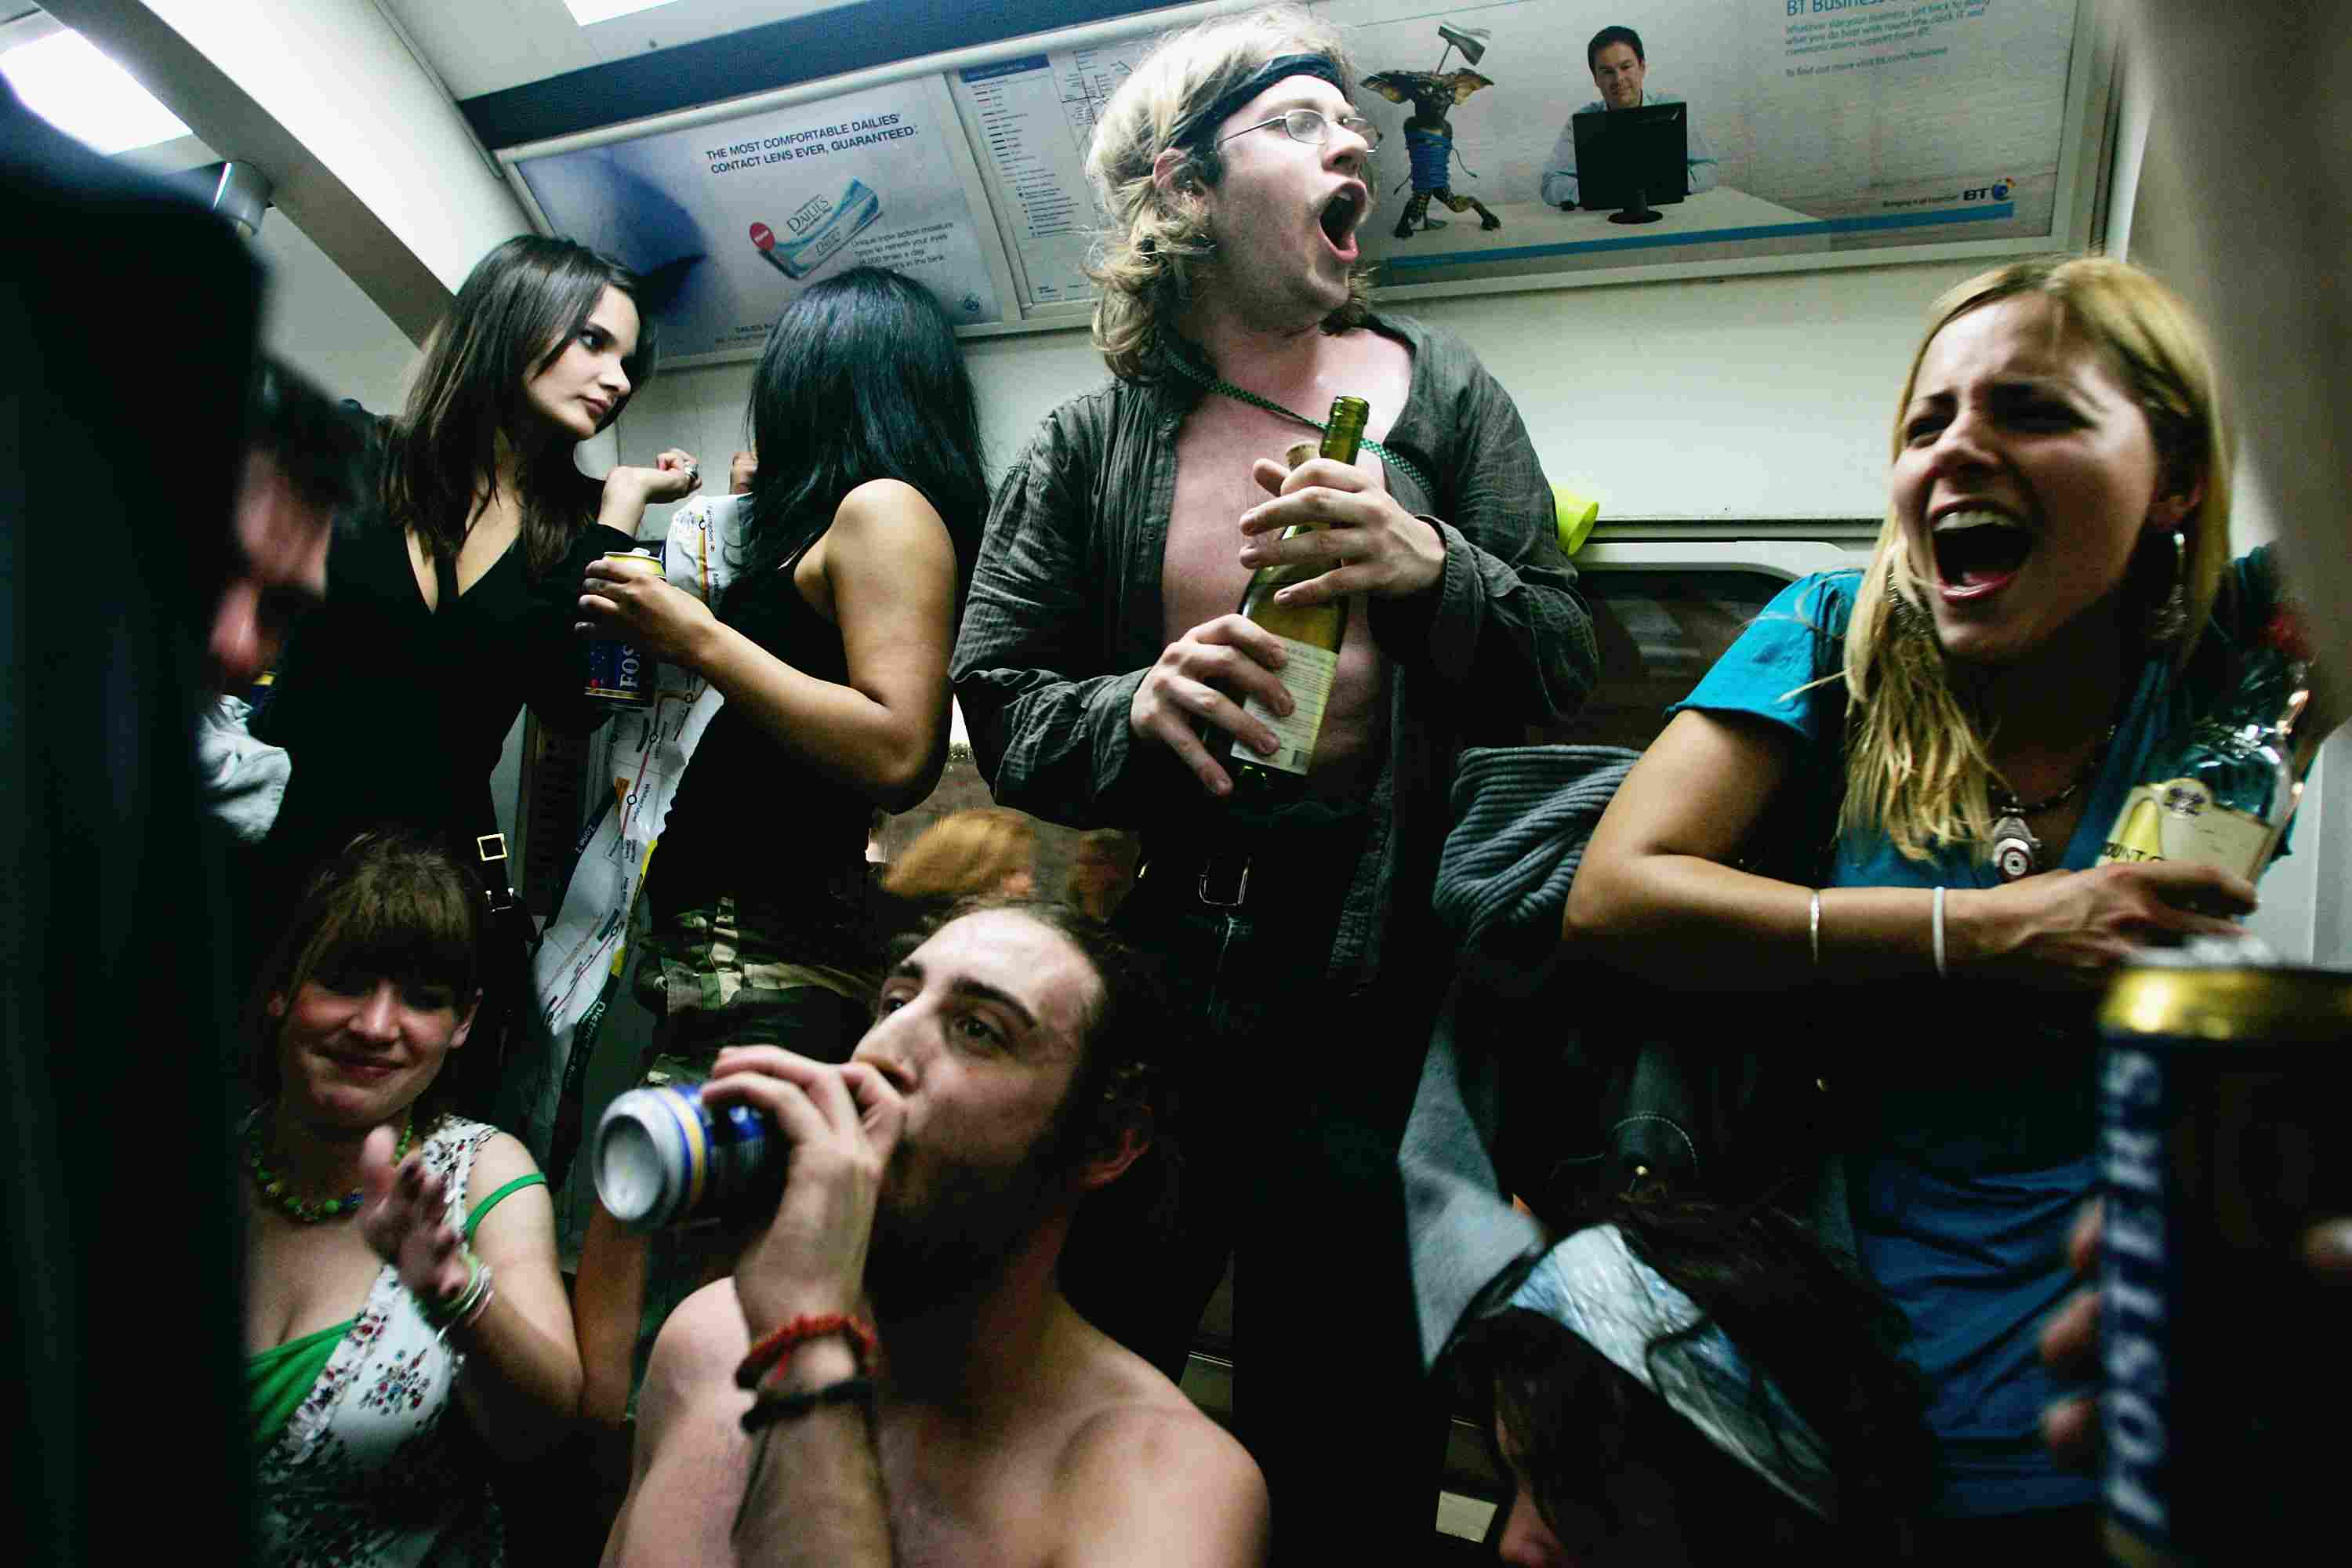 People partying on train